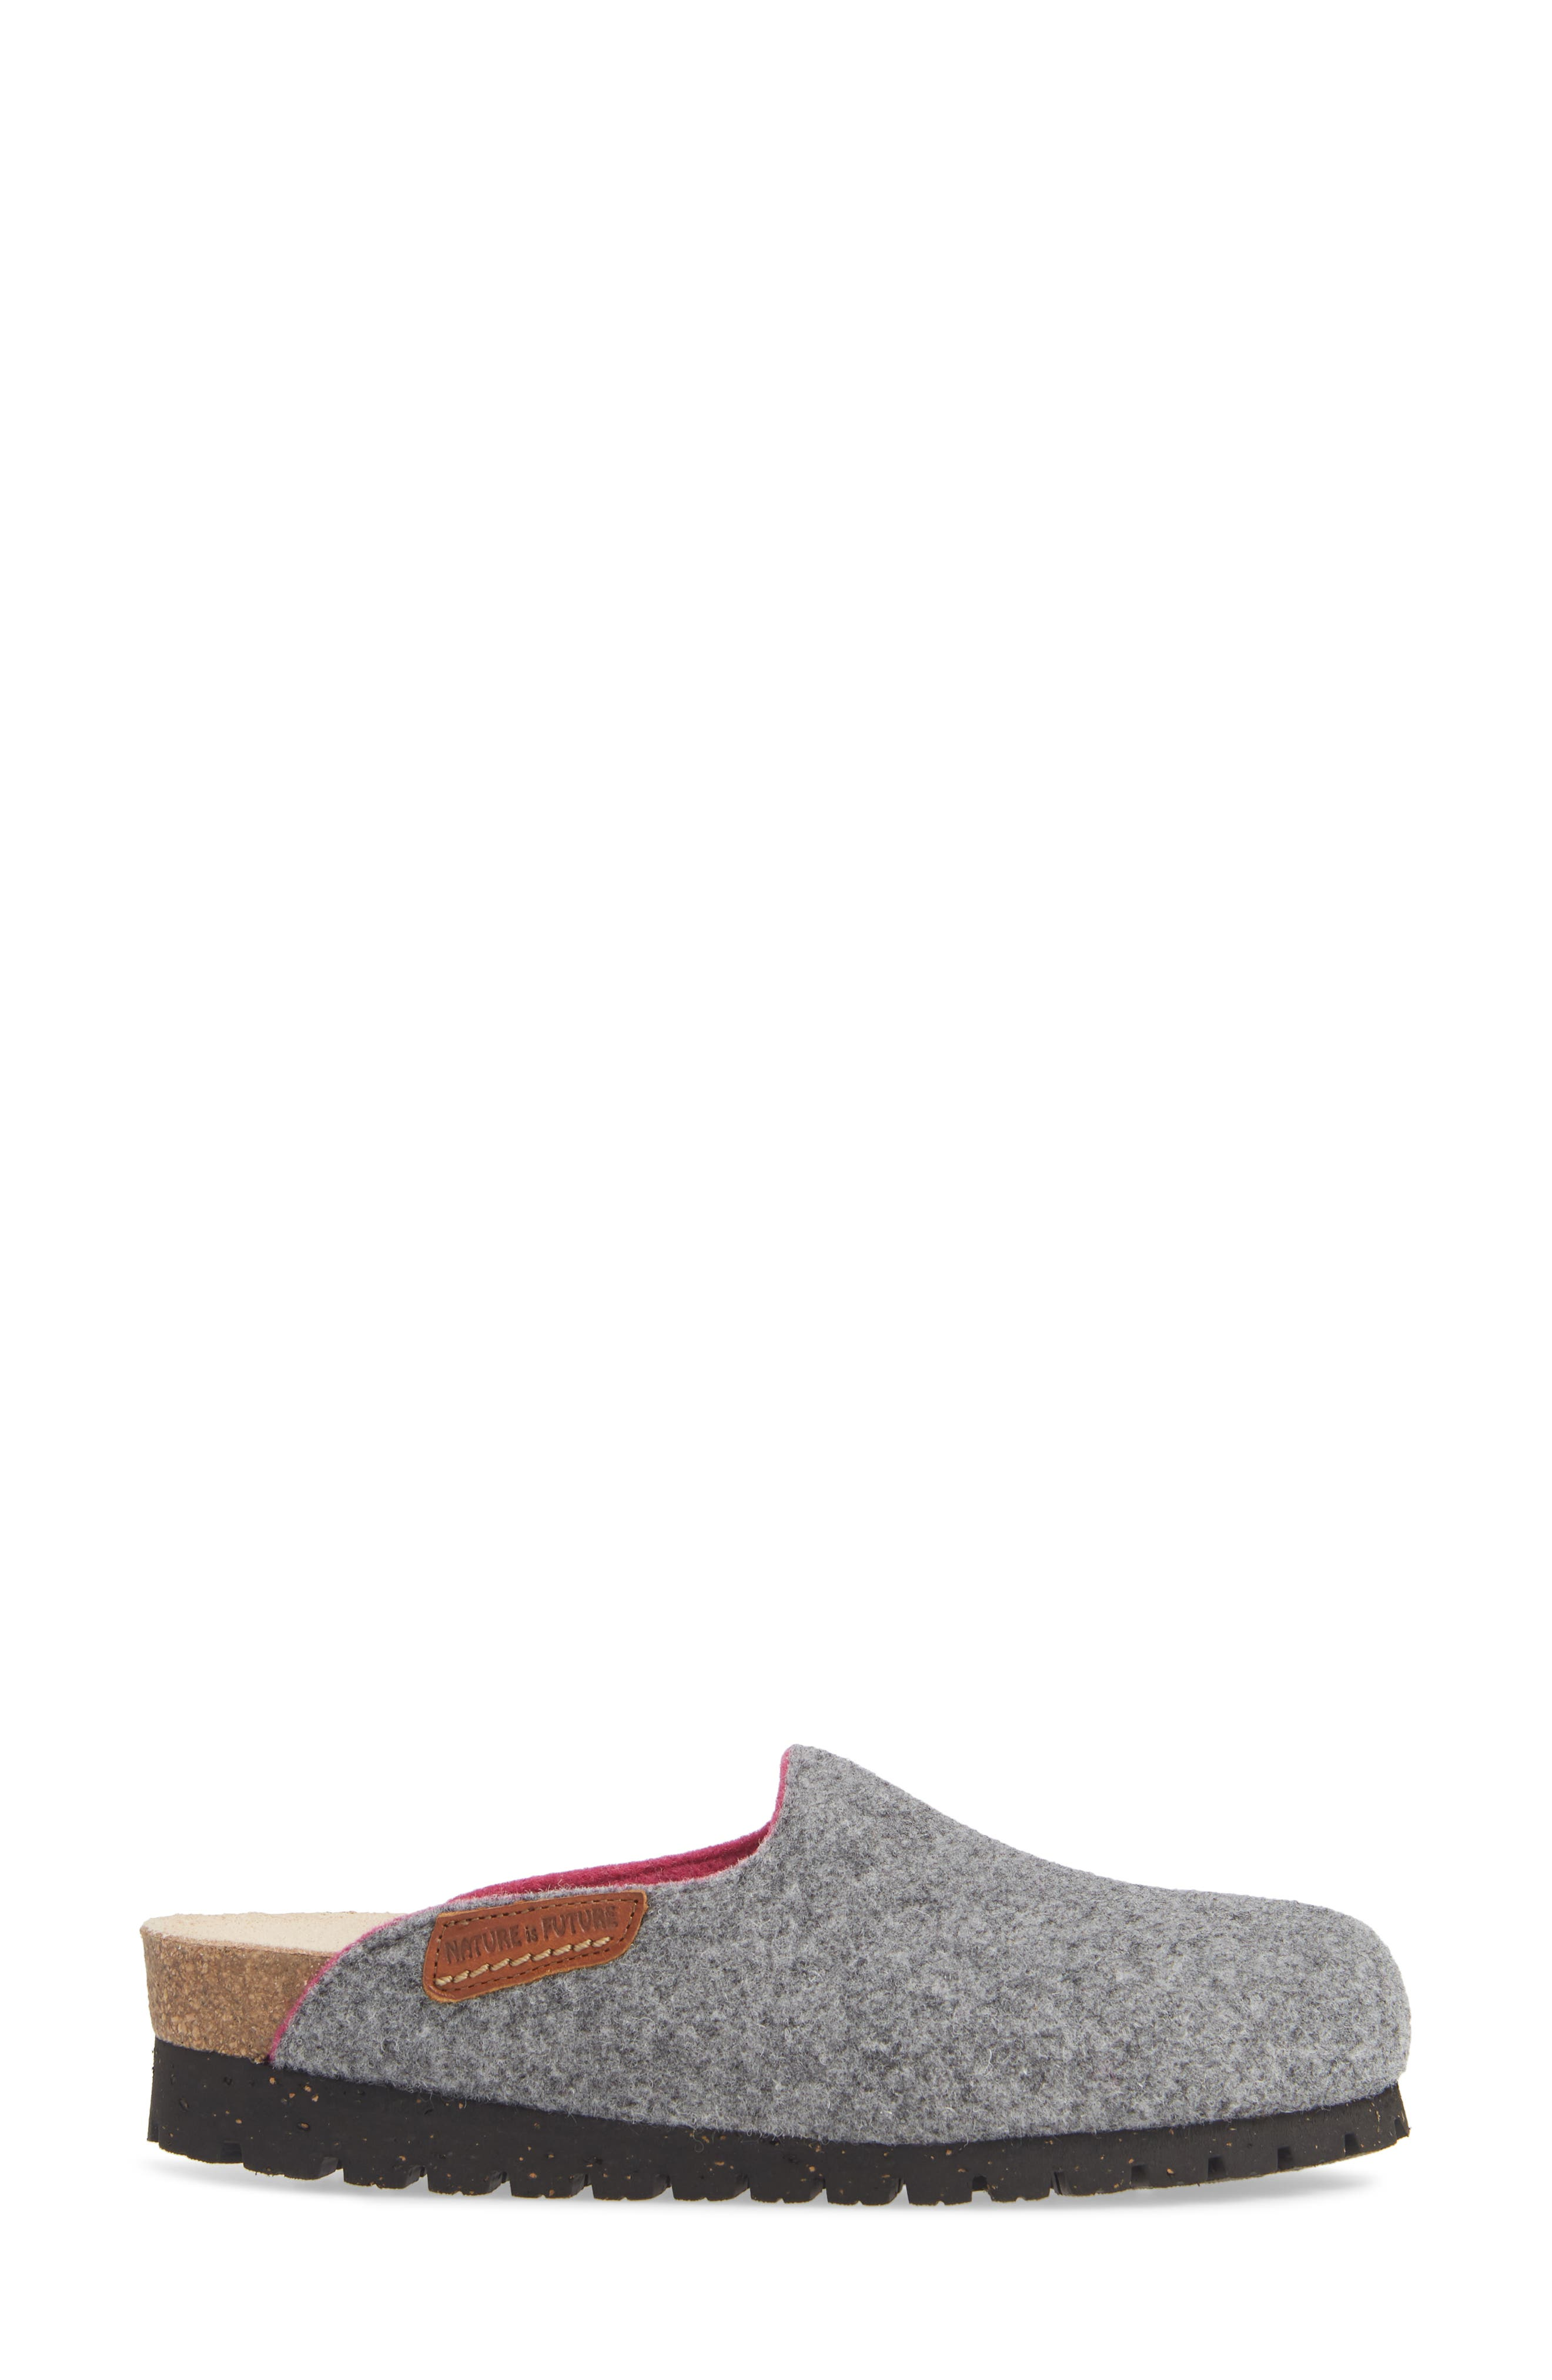 MEPHISTO, Thea Boiled Wool Clog, Alternate thumbnail 3, color, GREY FABRIC